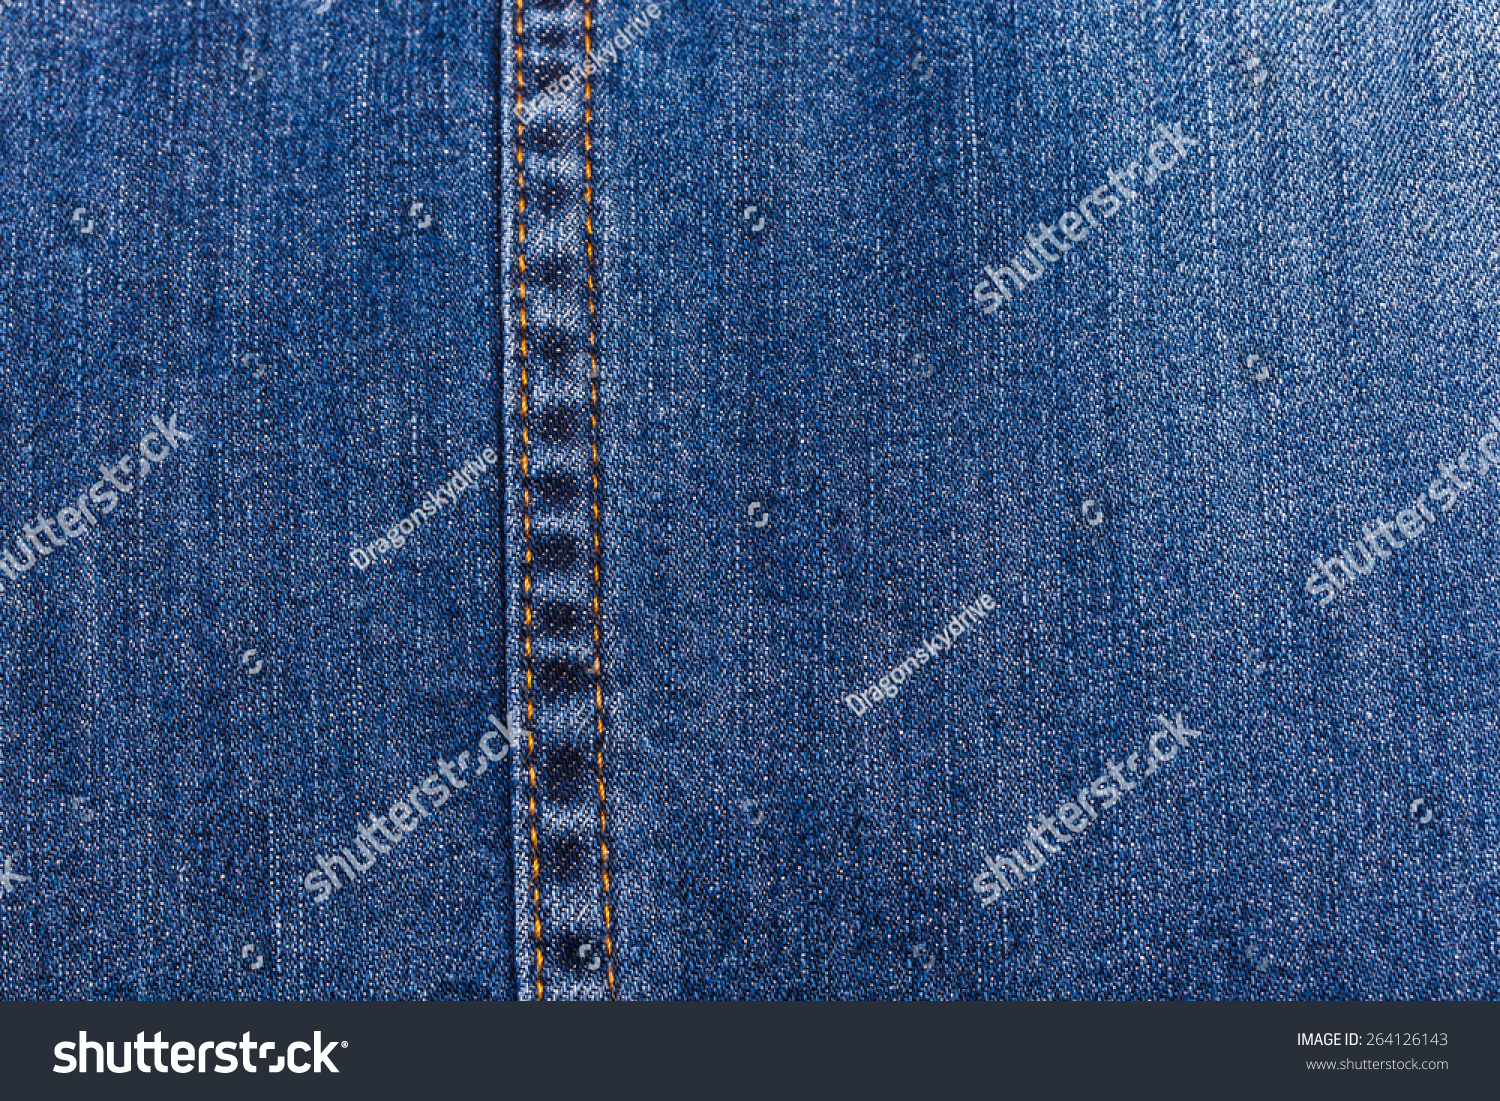 blue jeans coloring page - blue jean color stock photo 264126143 shutterstock